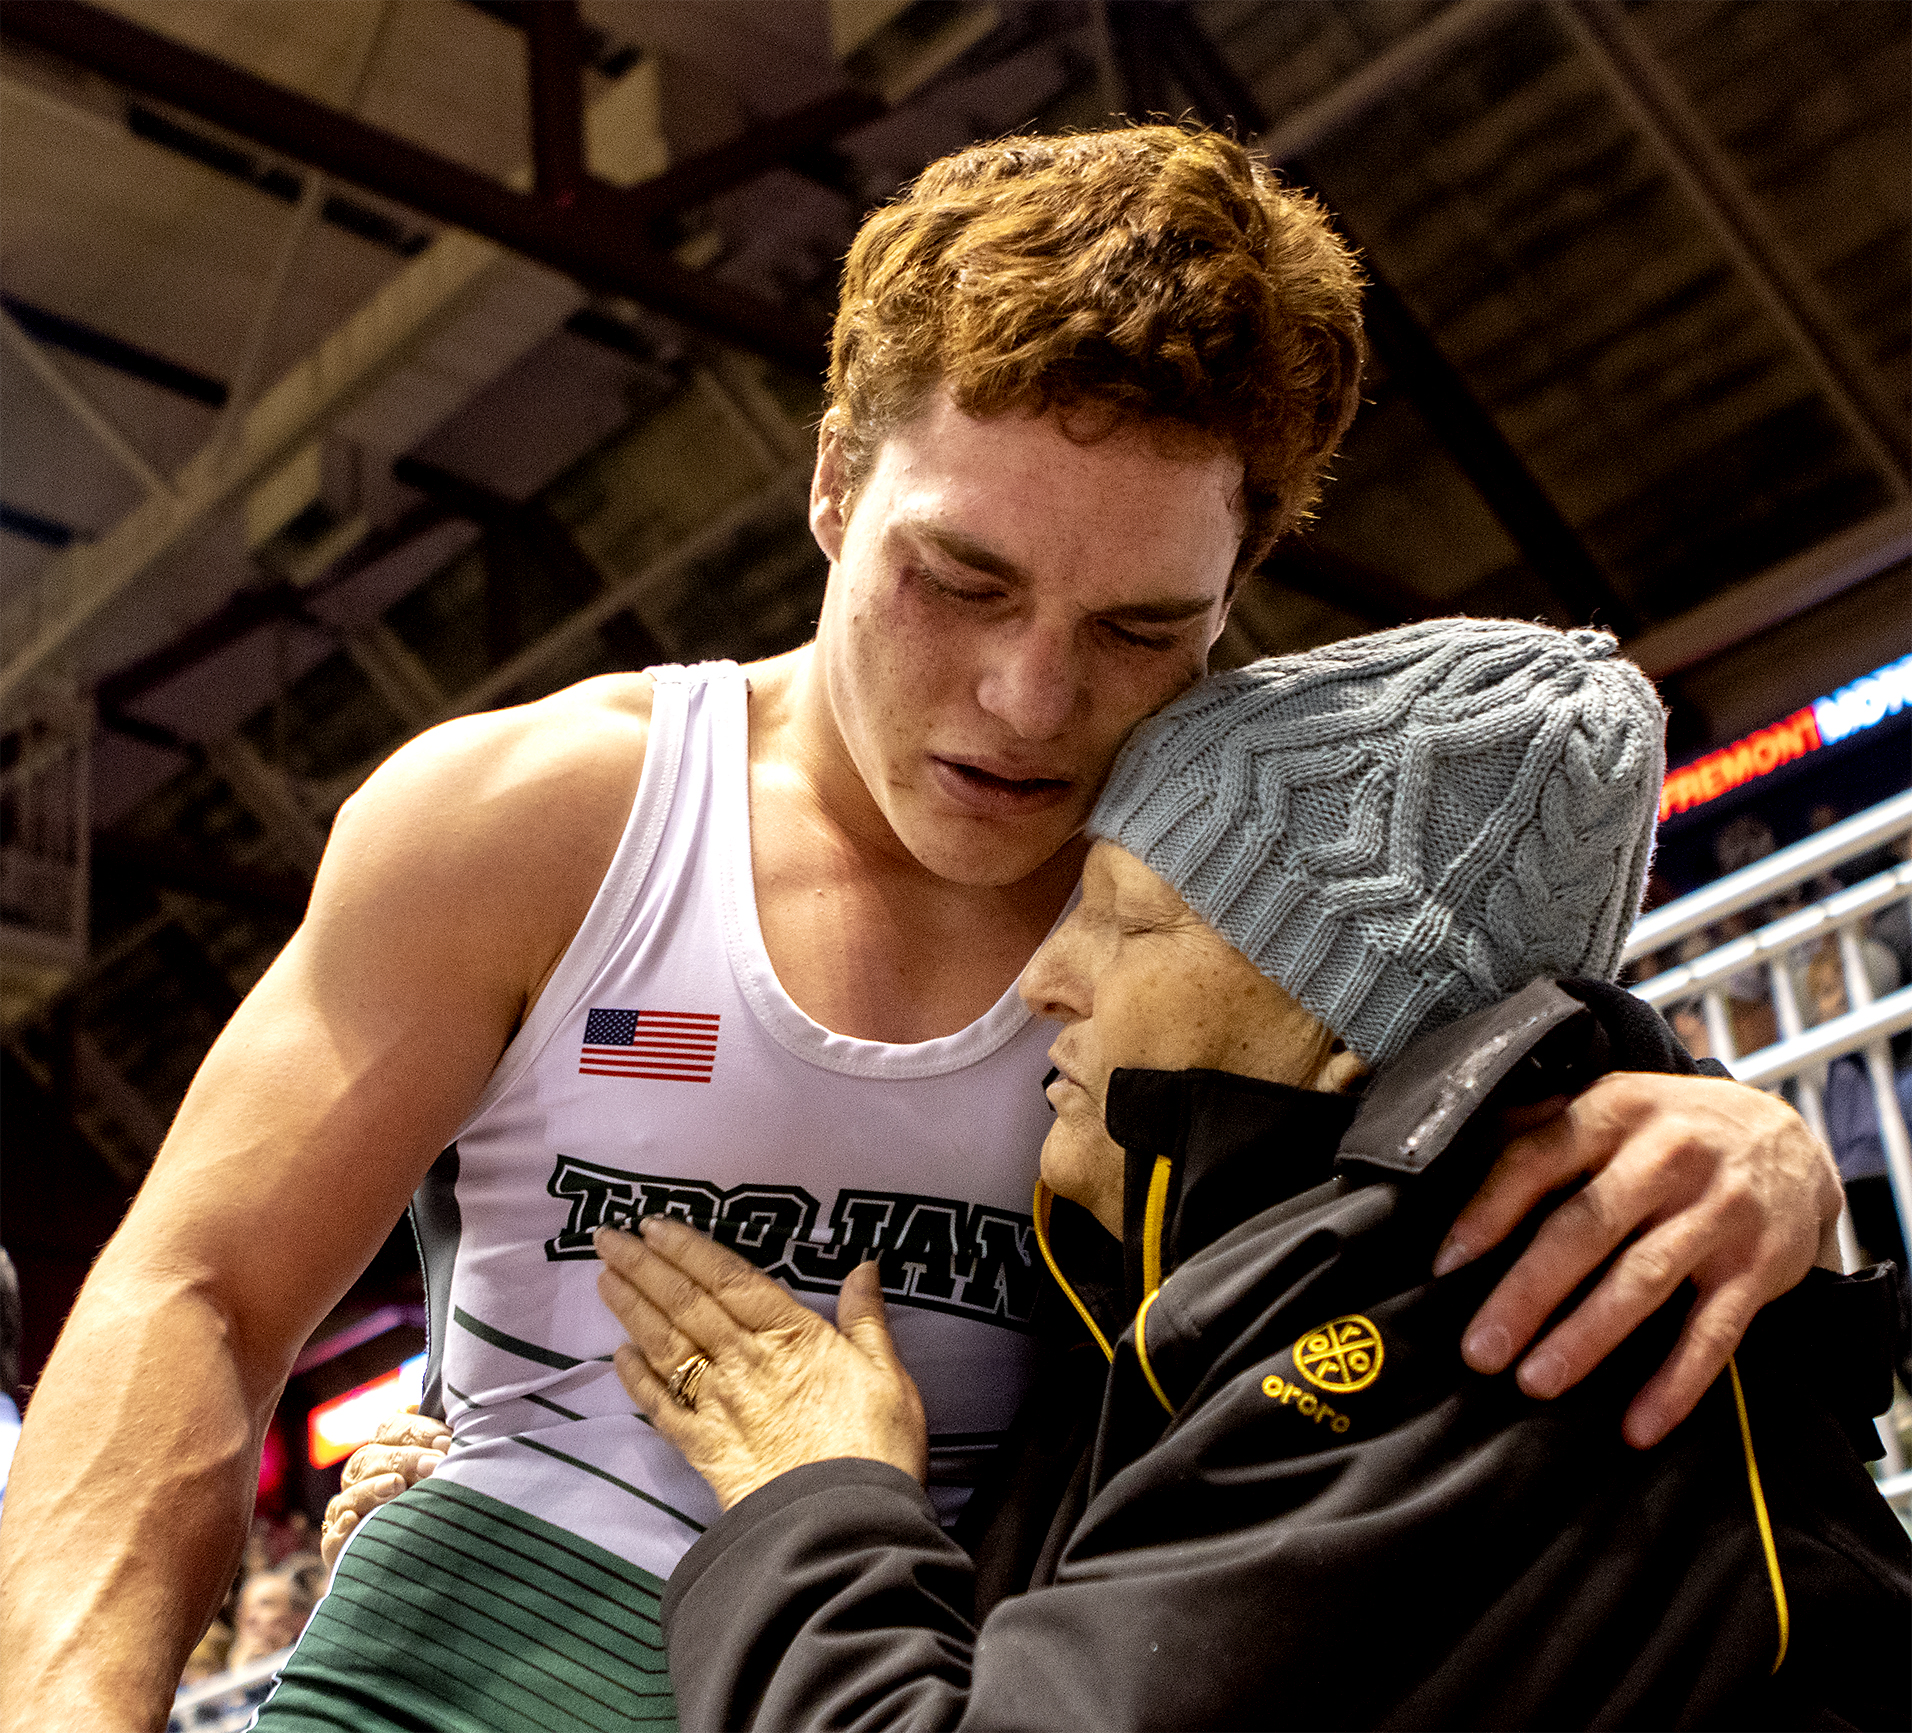 """Rhonda Kraus hugs her son Josh after his victory to take the state title at the State Wrestling Championships on Saturday, Feb. 23, 2019 at the Casper Events Center. Kraus has ovarian cancer and wasn't expected to make it to Christmas. """"Just being here means a lot,"""" Kraus' daughter Kassandra said."""